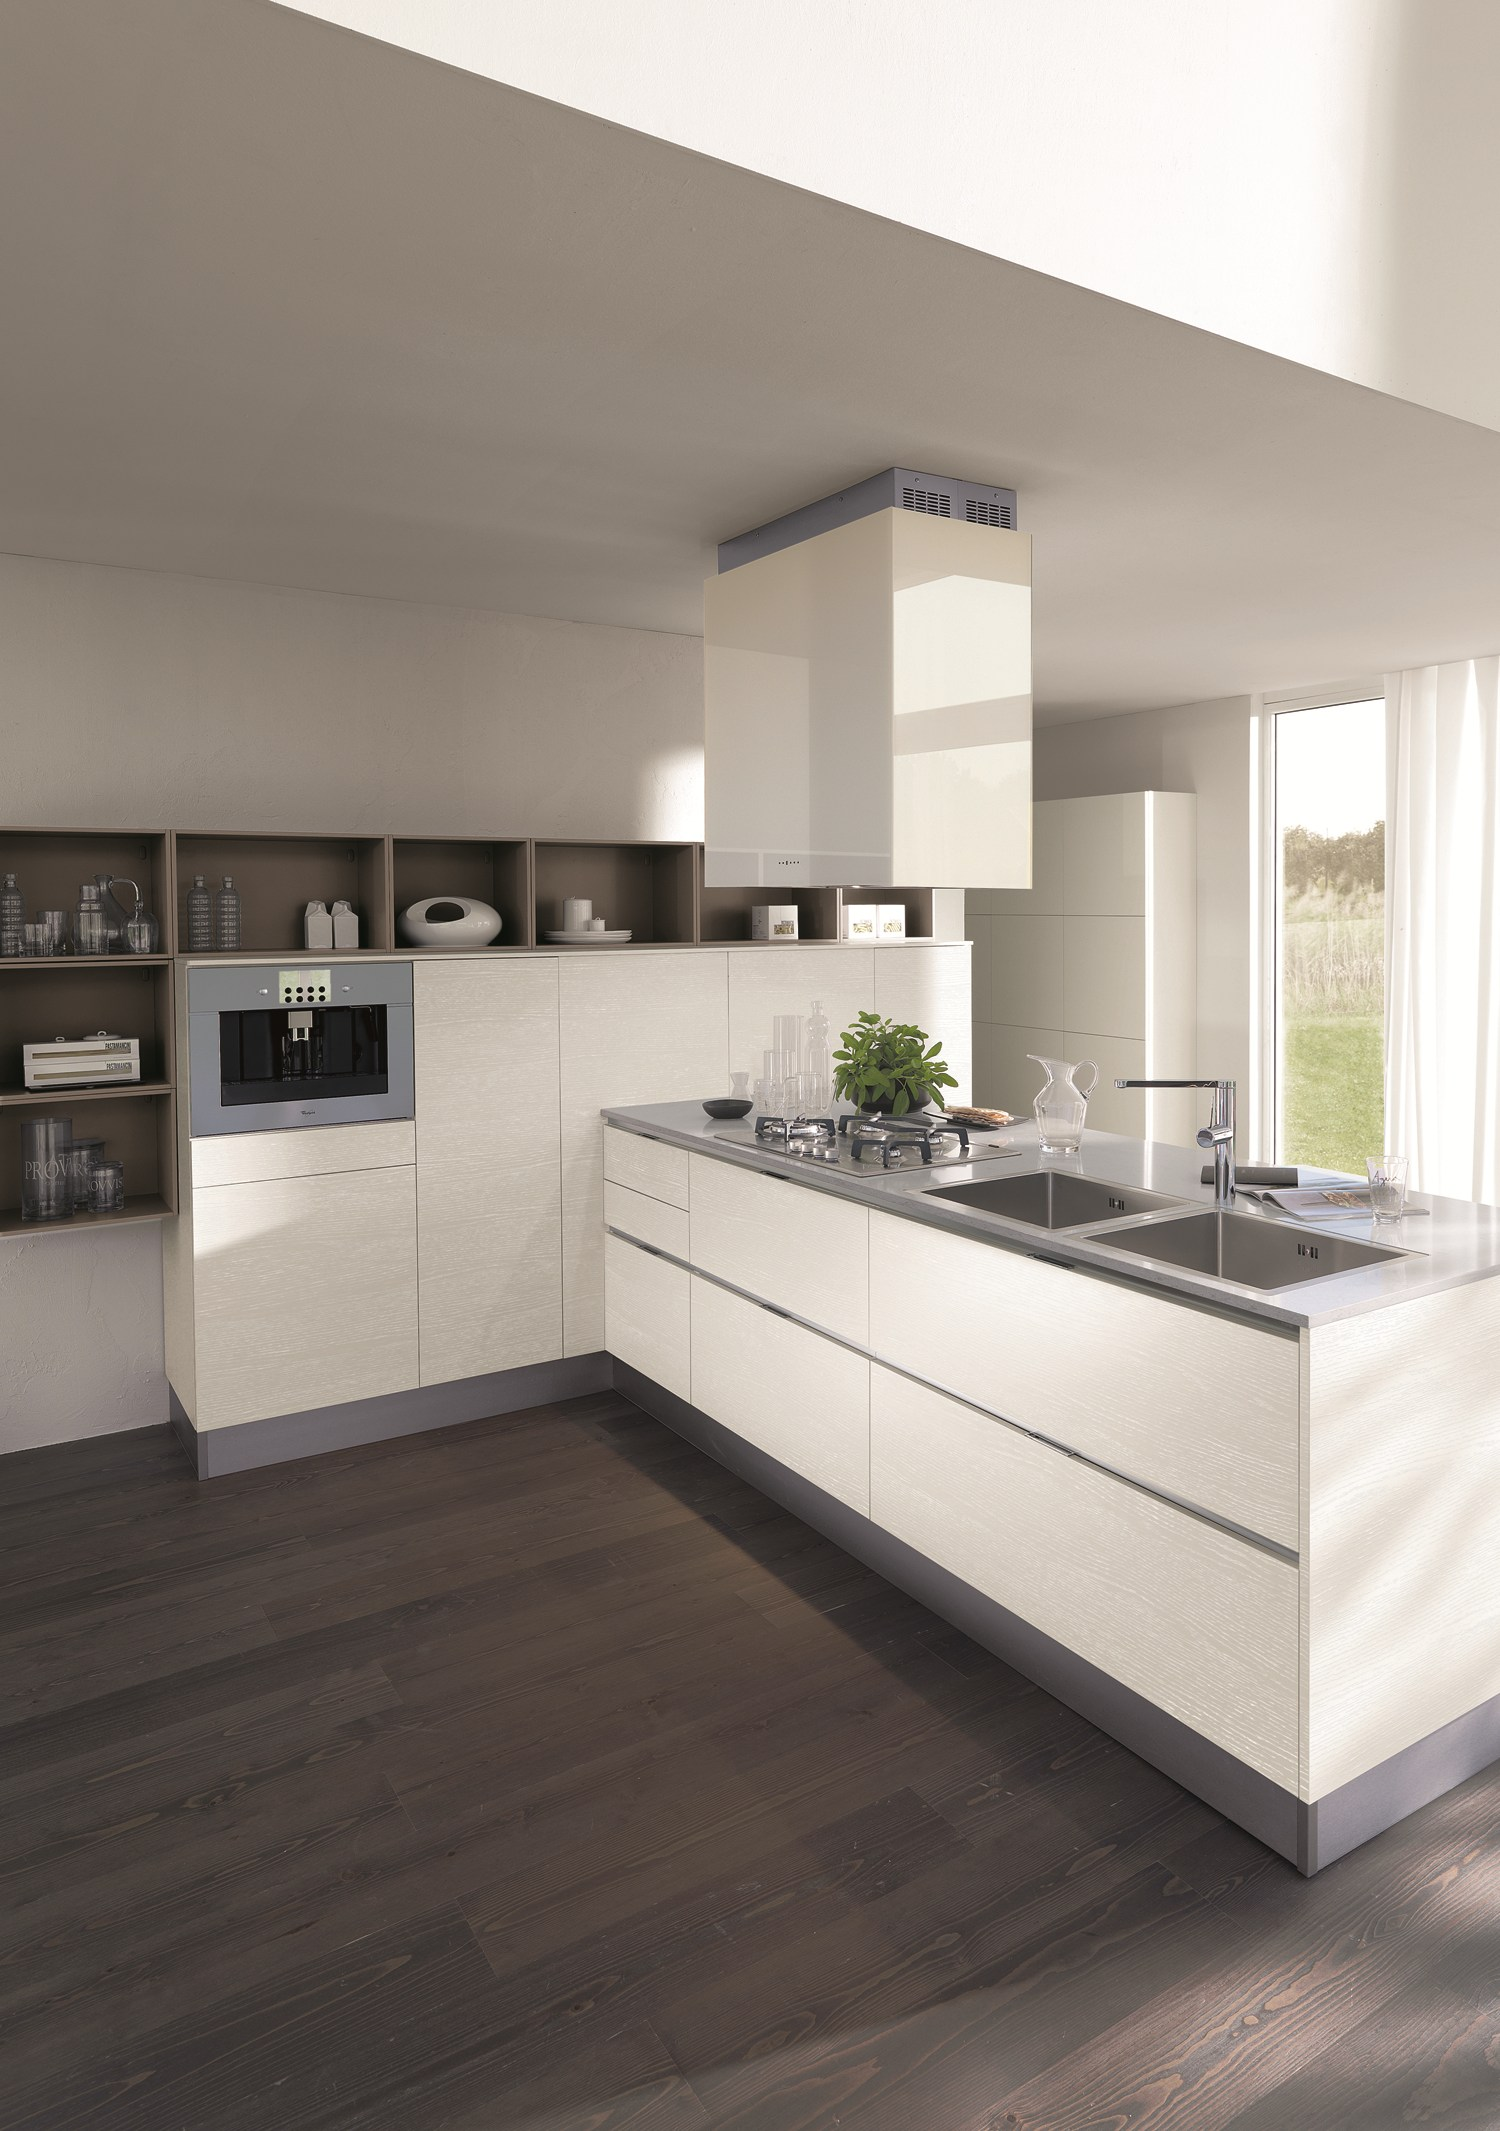 Emejing Preventivo Cucina Scavolini Contemporary - Ideas & Design ...